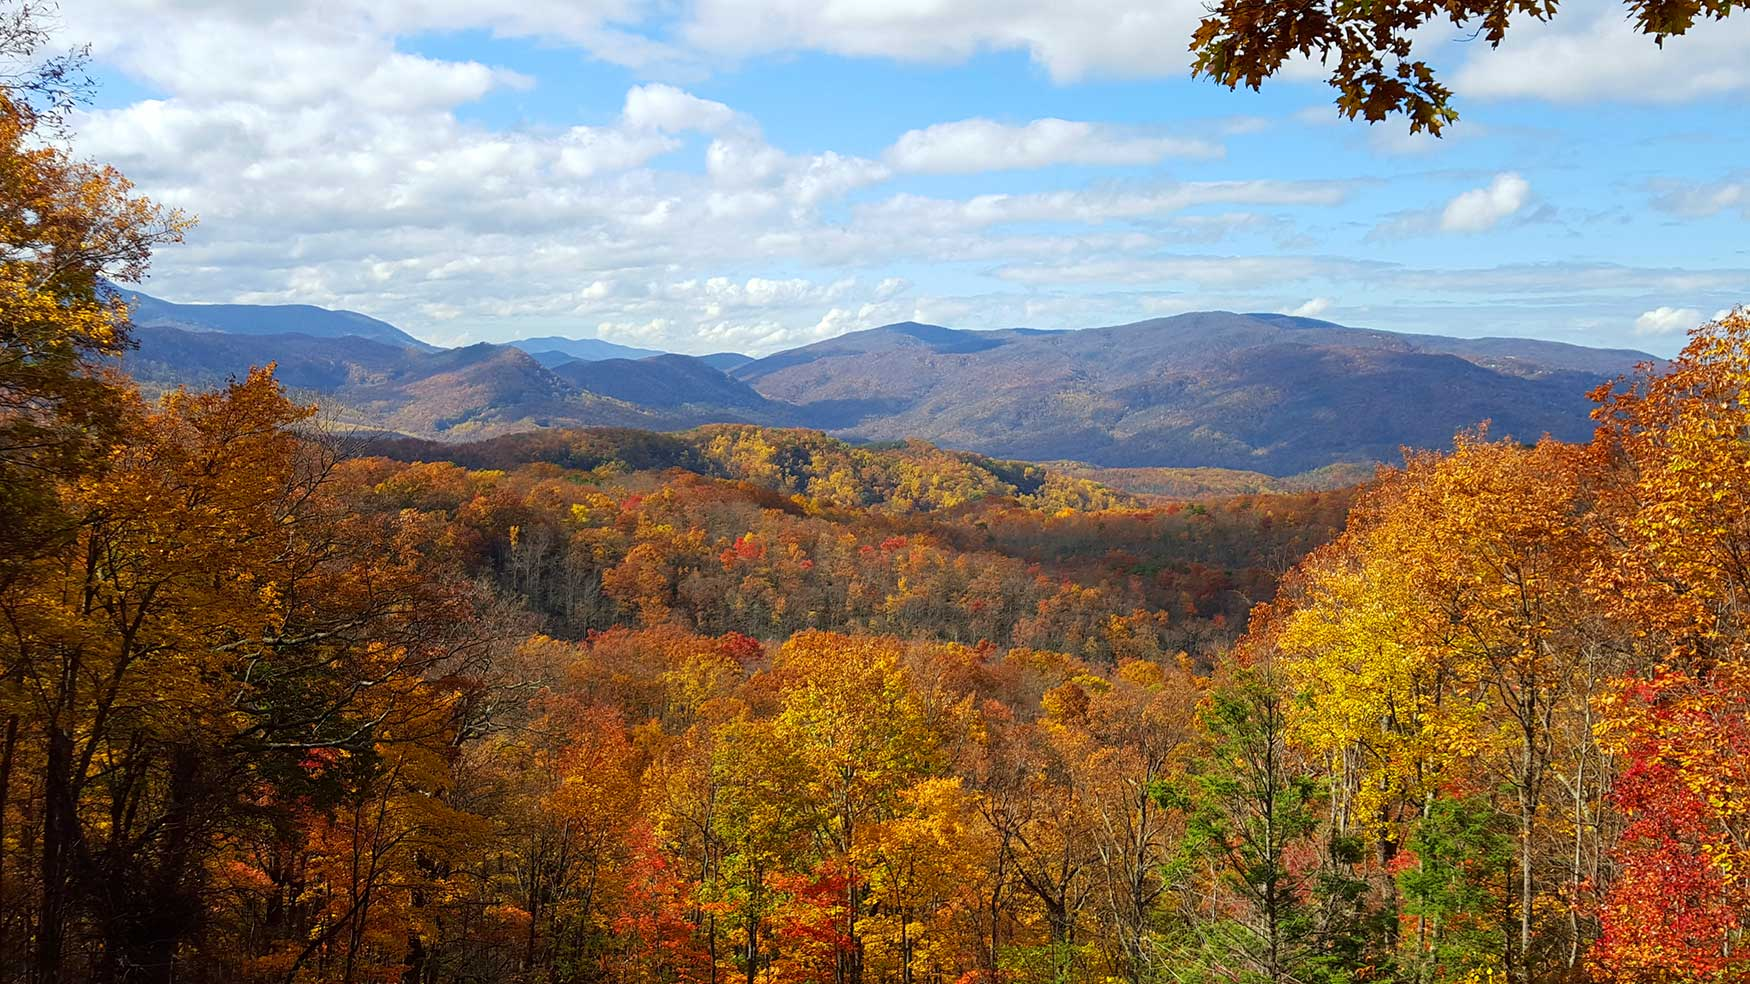 stunning photo of mountains with fall colors in Gatlinburg Tn